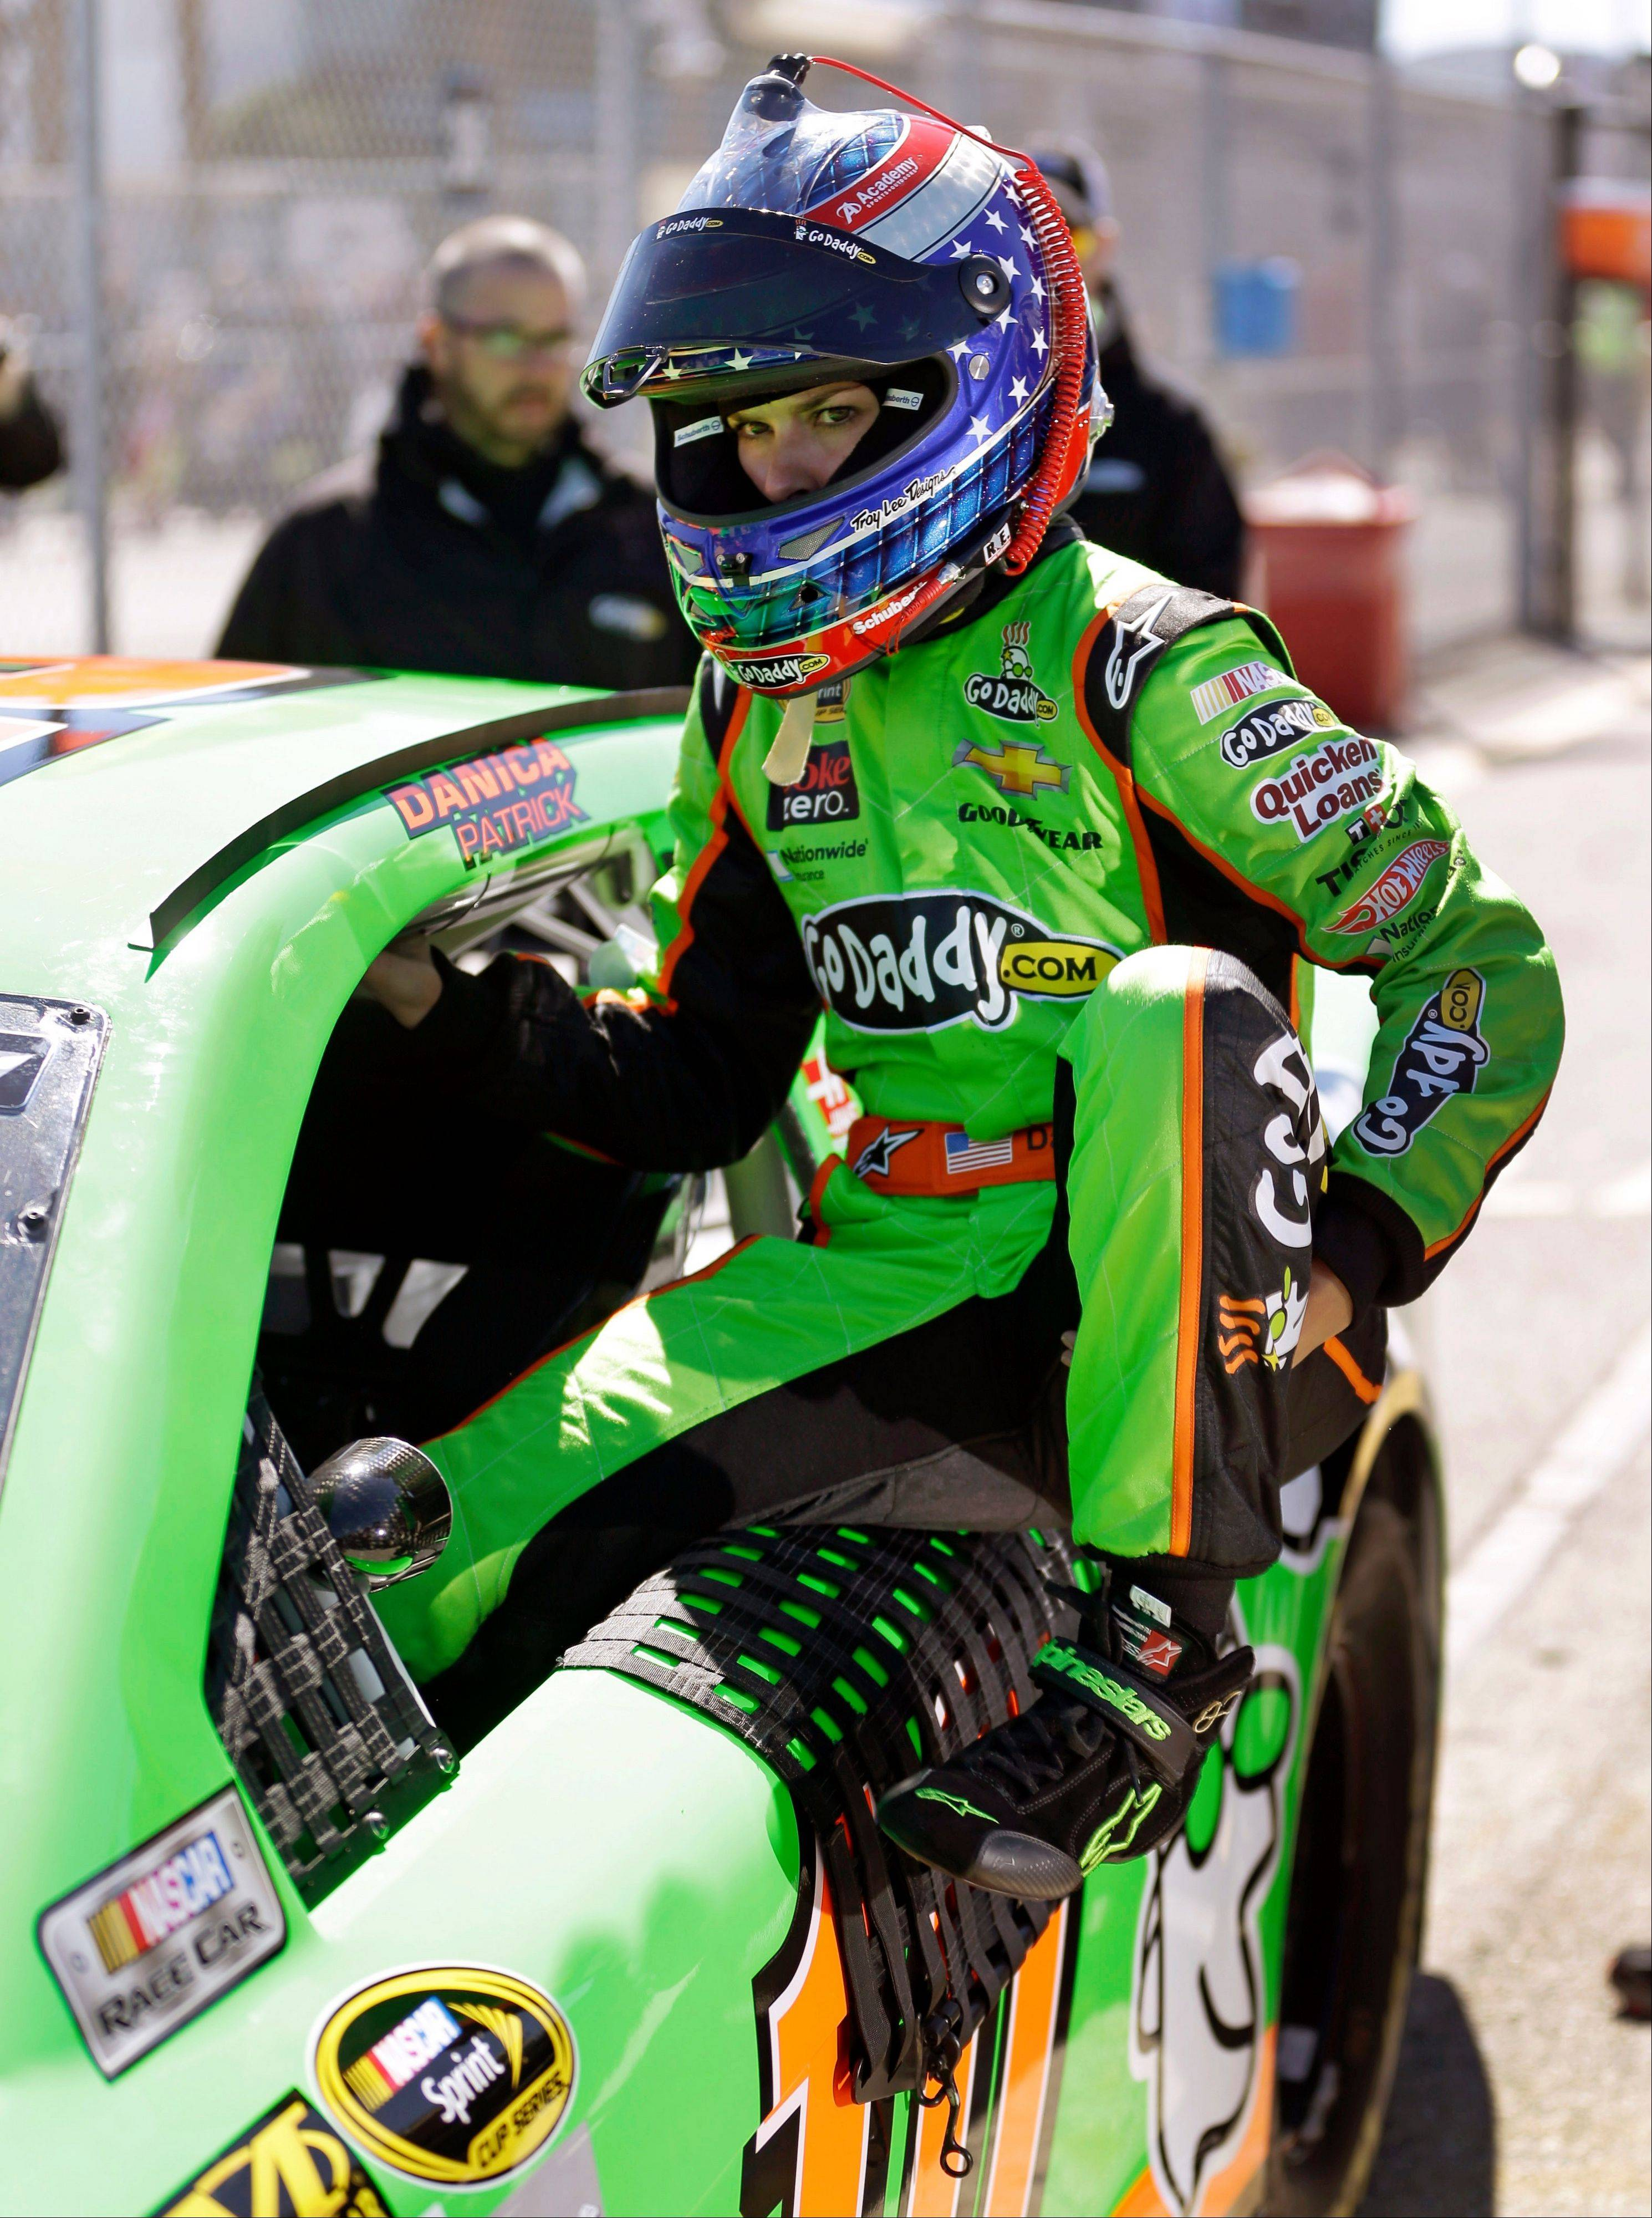 Danica Patrick climbs out of her car after her qualifying run for the NASCAR Daytona 500 Sprint Cup Series auto race at Daytona International Speedway, Sunday, Feb. 17, 2013, in Daytona Beach, Fla. Patrick won the pole, becoming the first woman to secure the top spot for any Sprint Cup race.